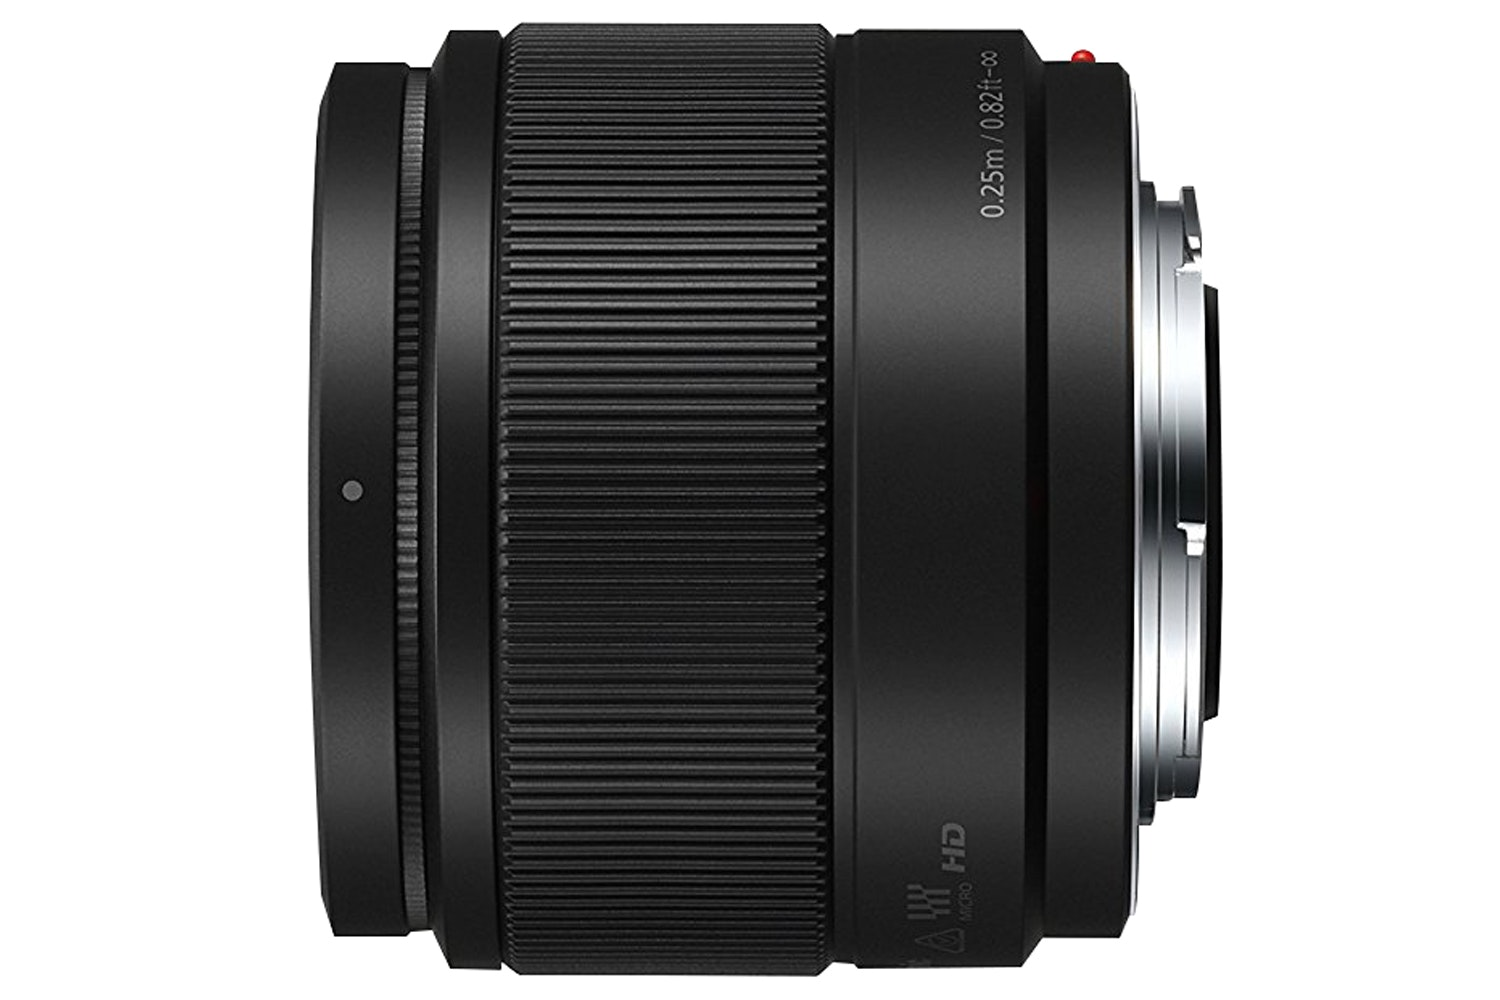 Panasonic Lumix 25mm F1.7 Camera Lens